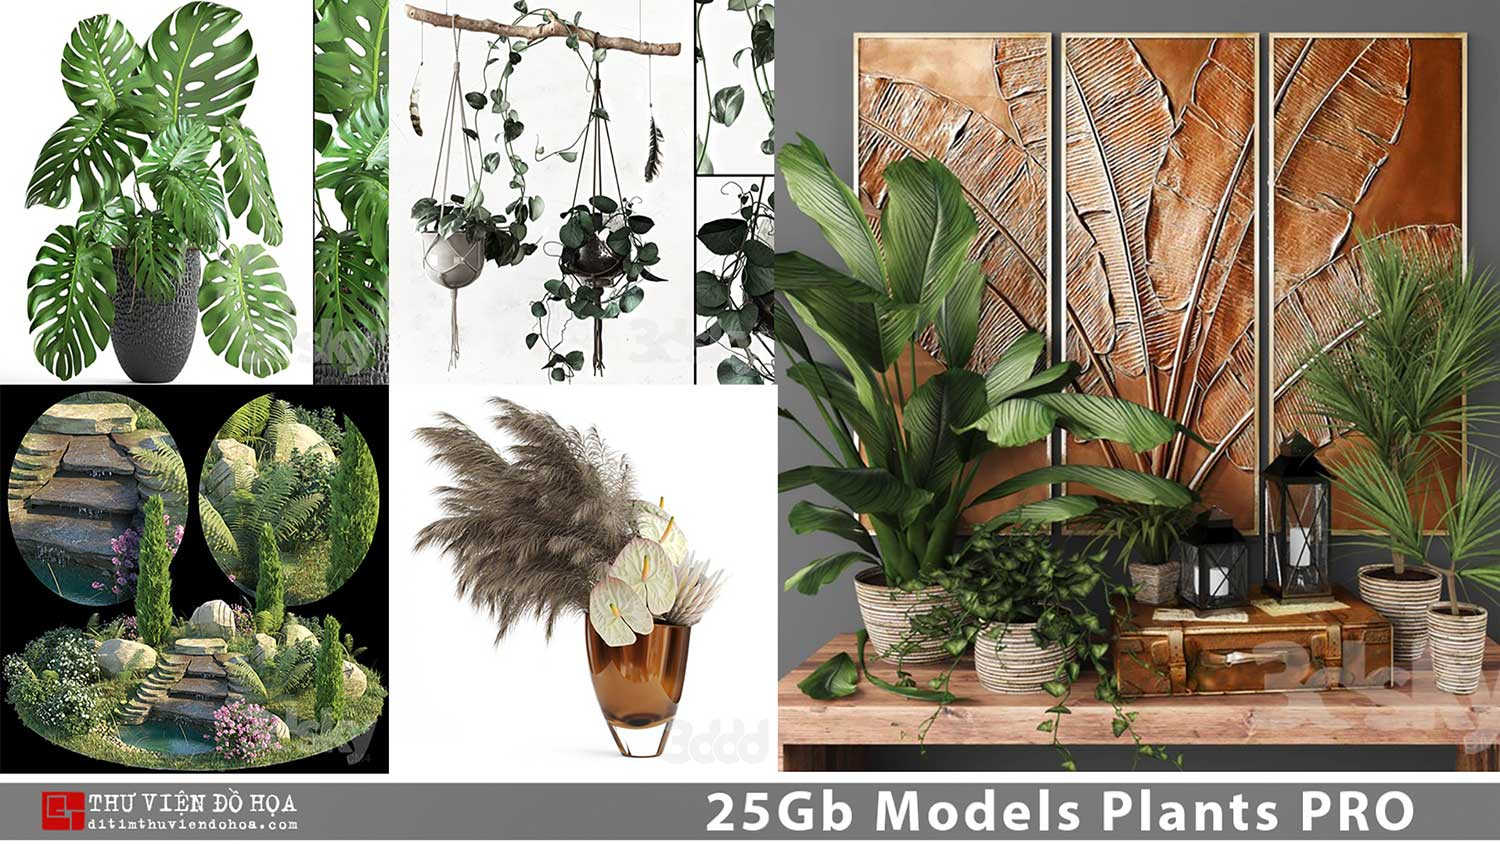 [ 3dsmax ] 25Gb Models Plants PRO share by DitimStudio